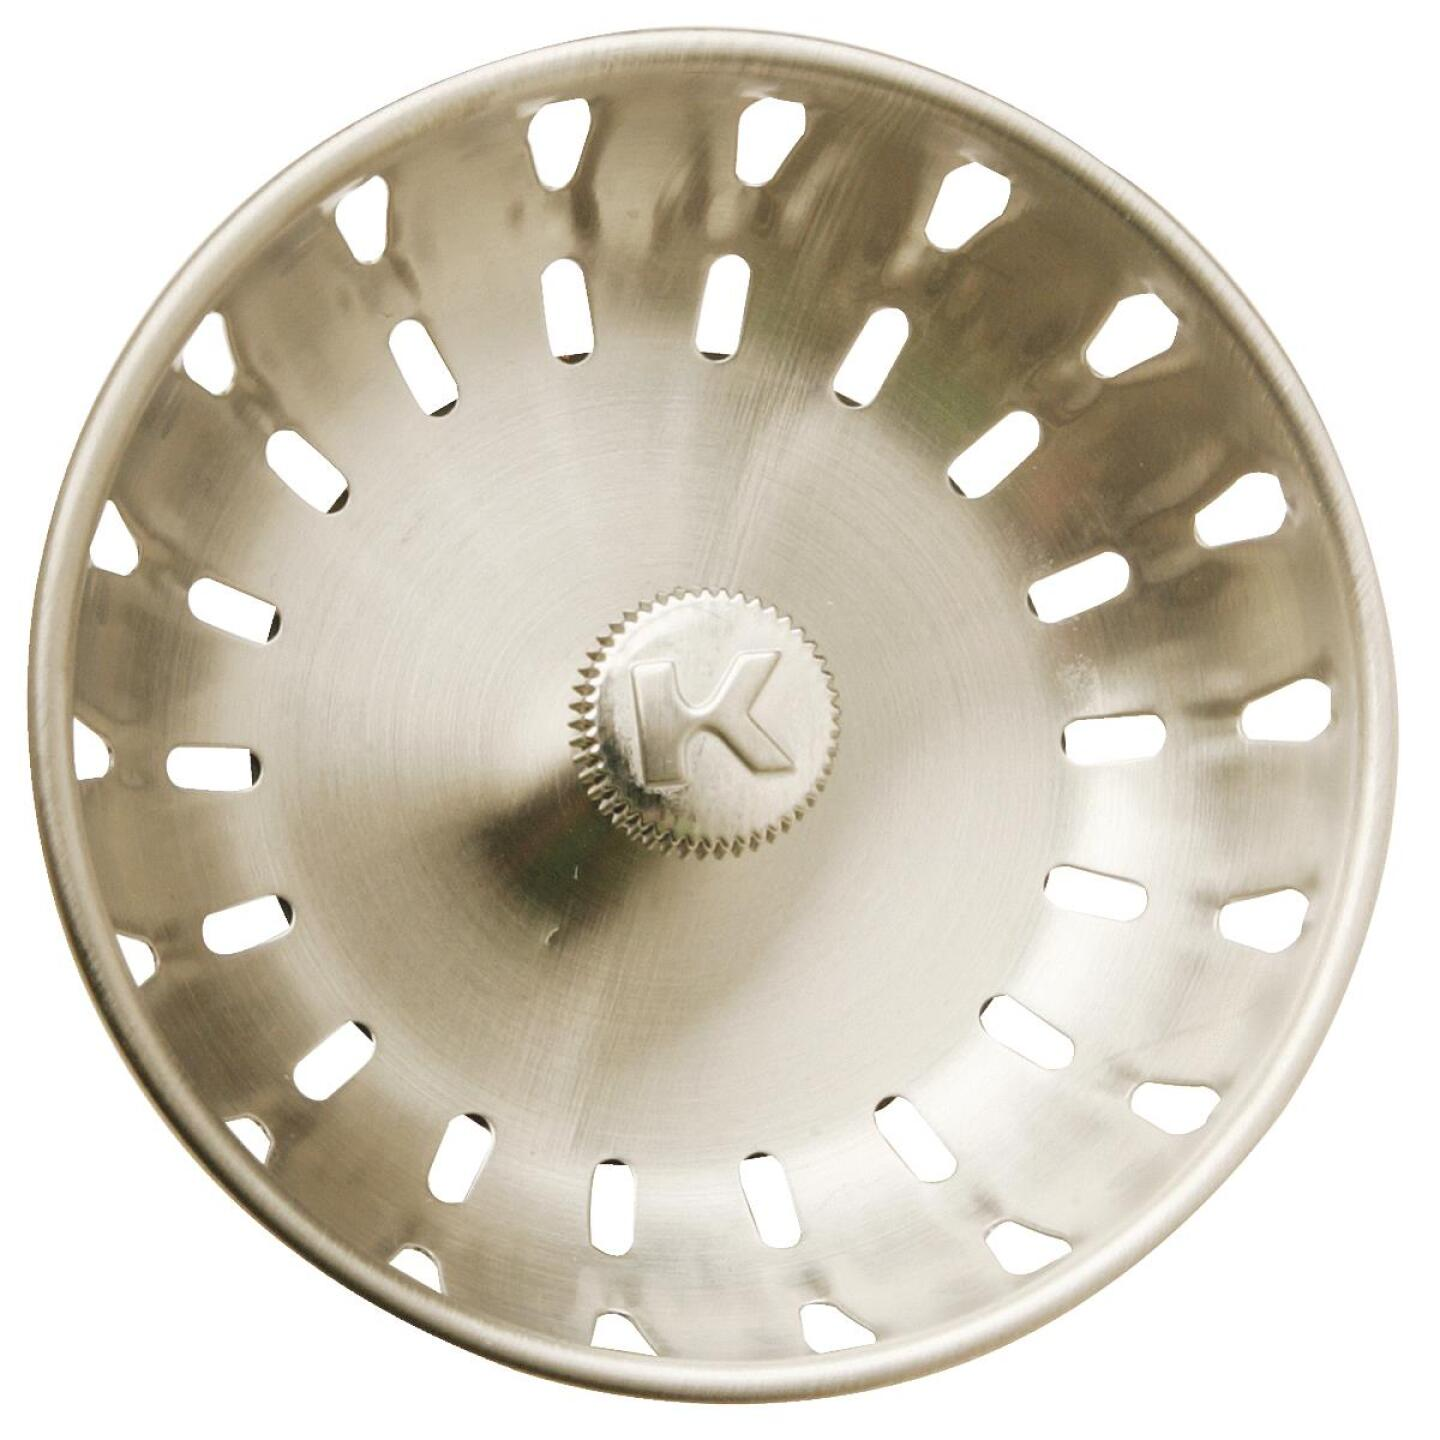 Do it Brushed Nickel Replacement Basket Strainer Cup with Fixed Post Image 1